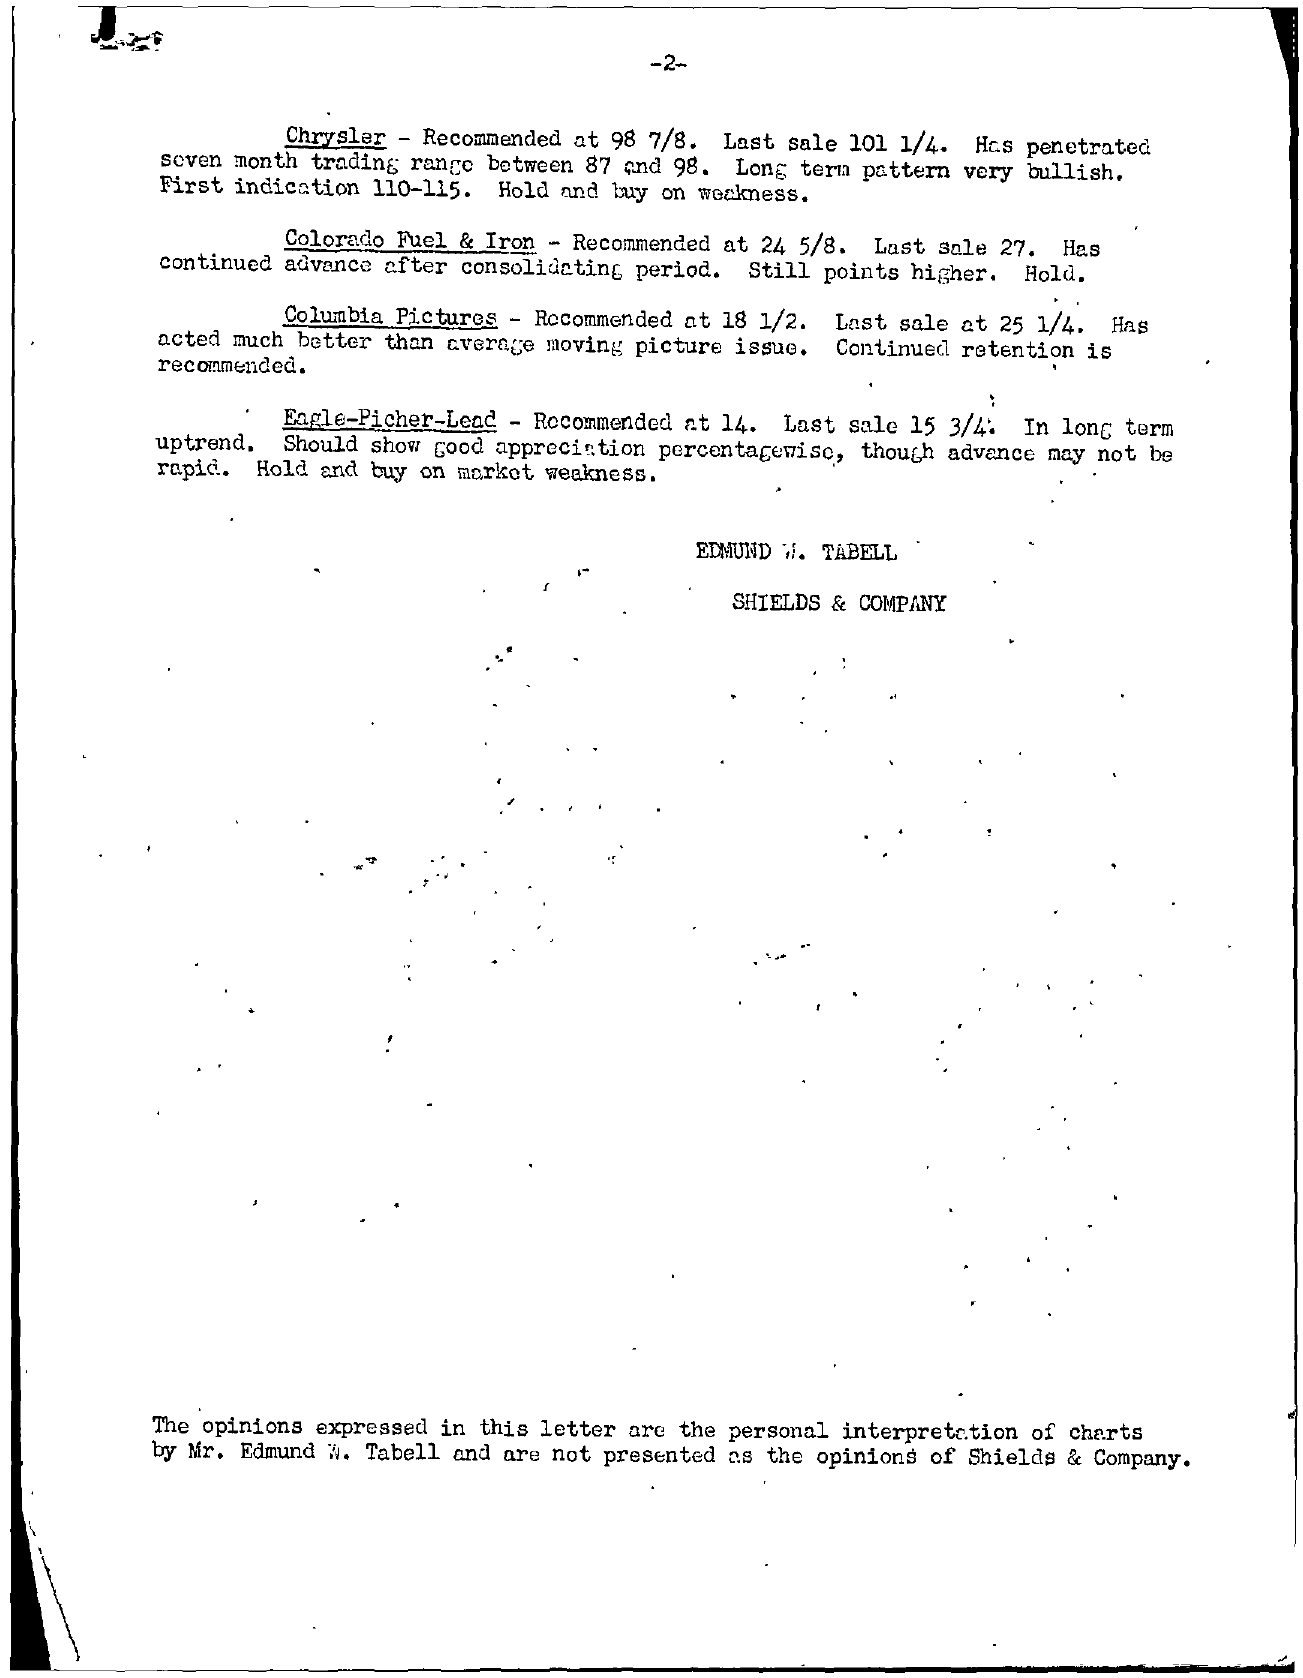 Tabell's Market Letter - February 13, 1945 page 2